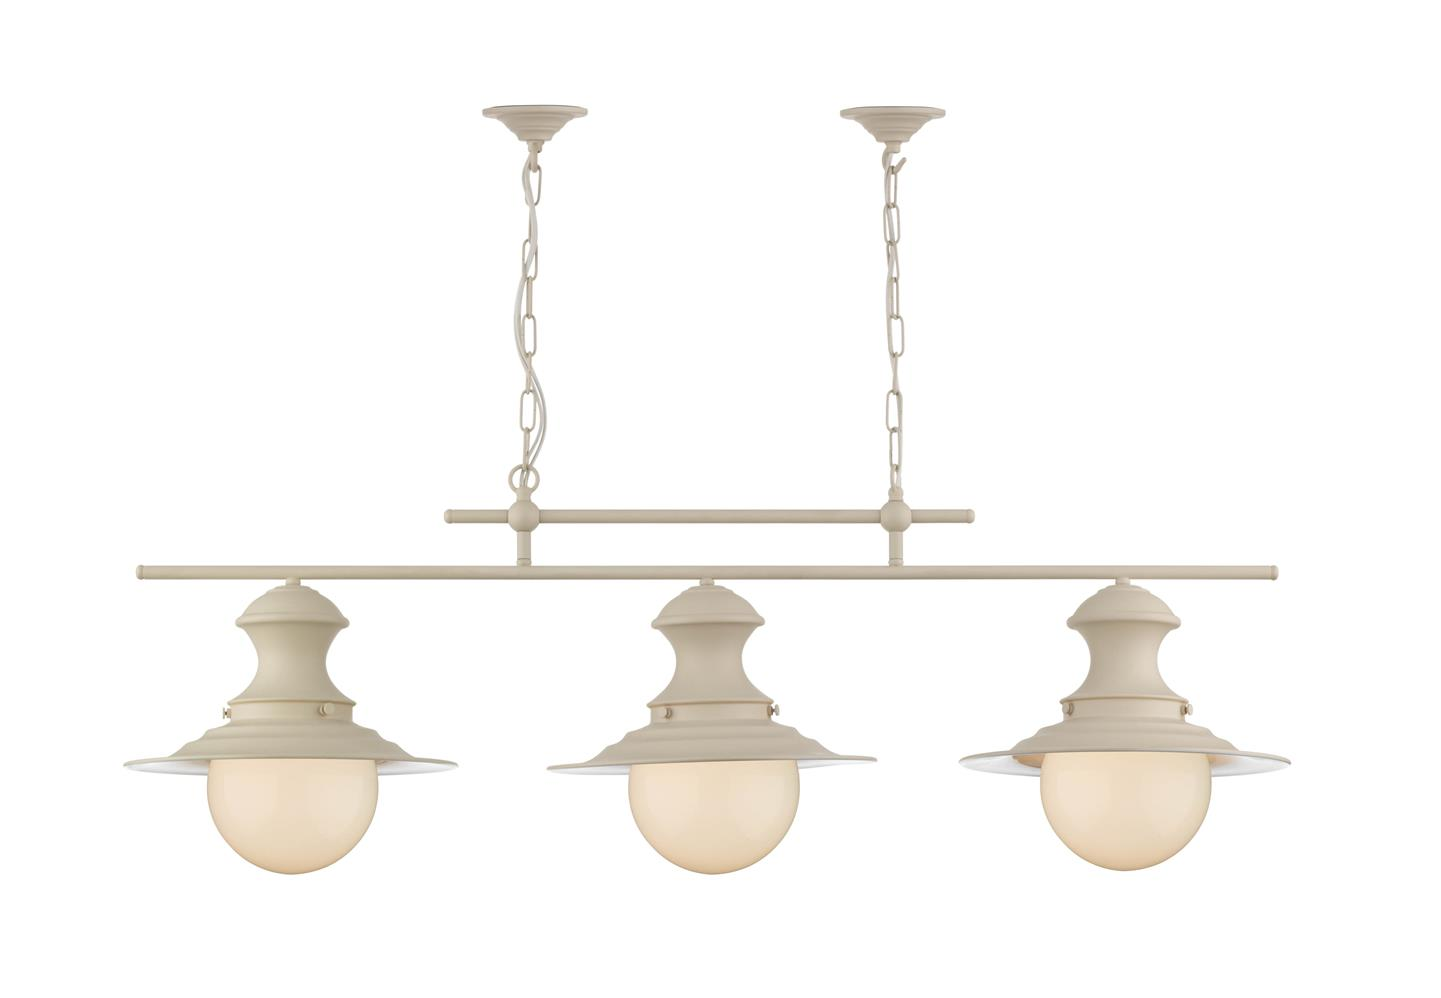 David Hunt Lighting EP0333 Station 3 Light Bar Pendant in Cream